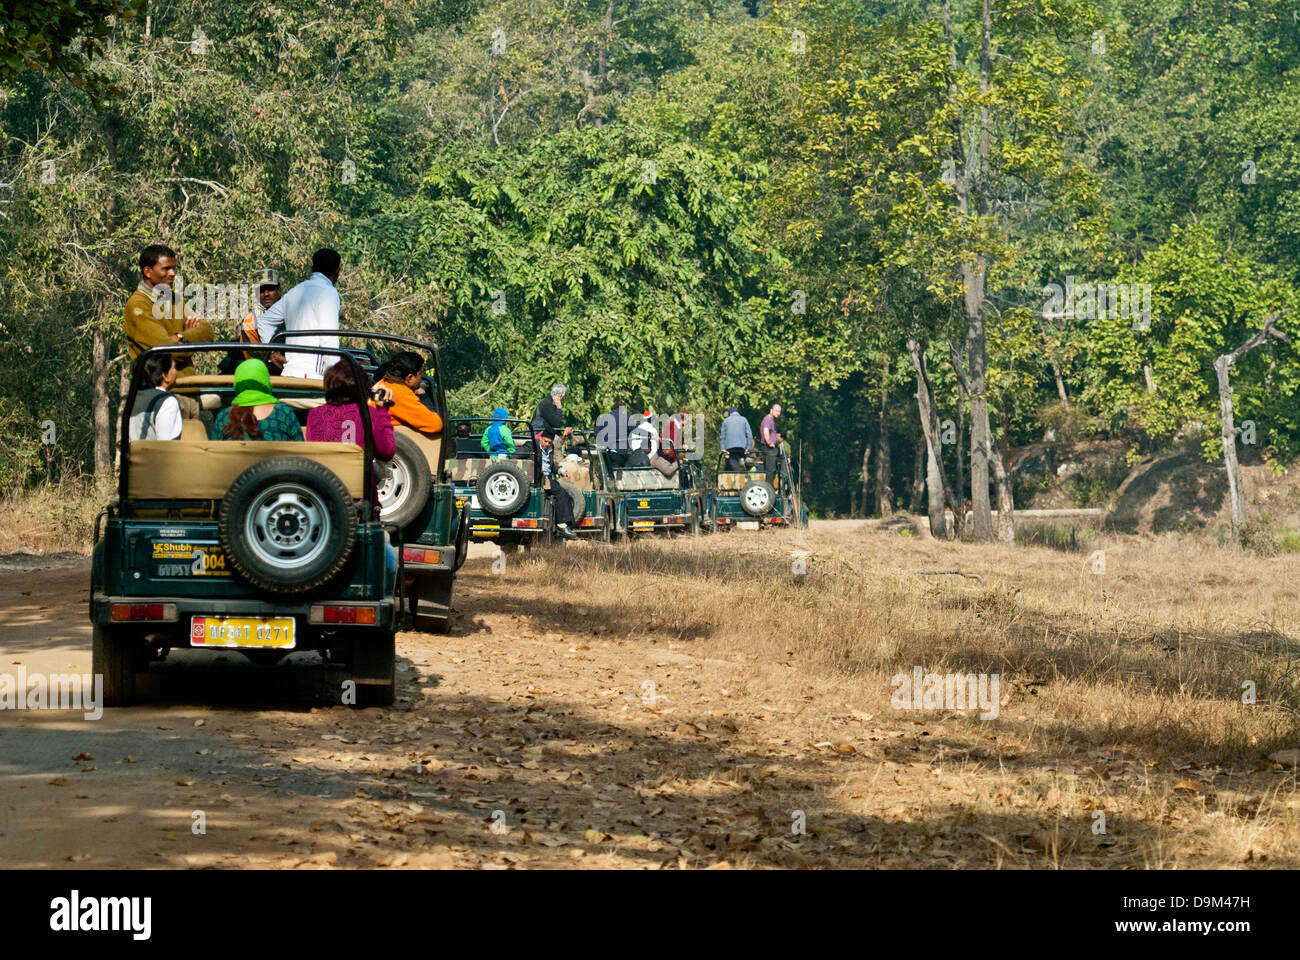 Tiger in Indien zu beobachten Bandhavgarh National Park Stockbild